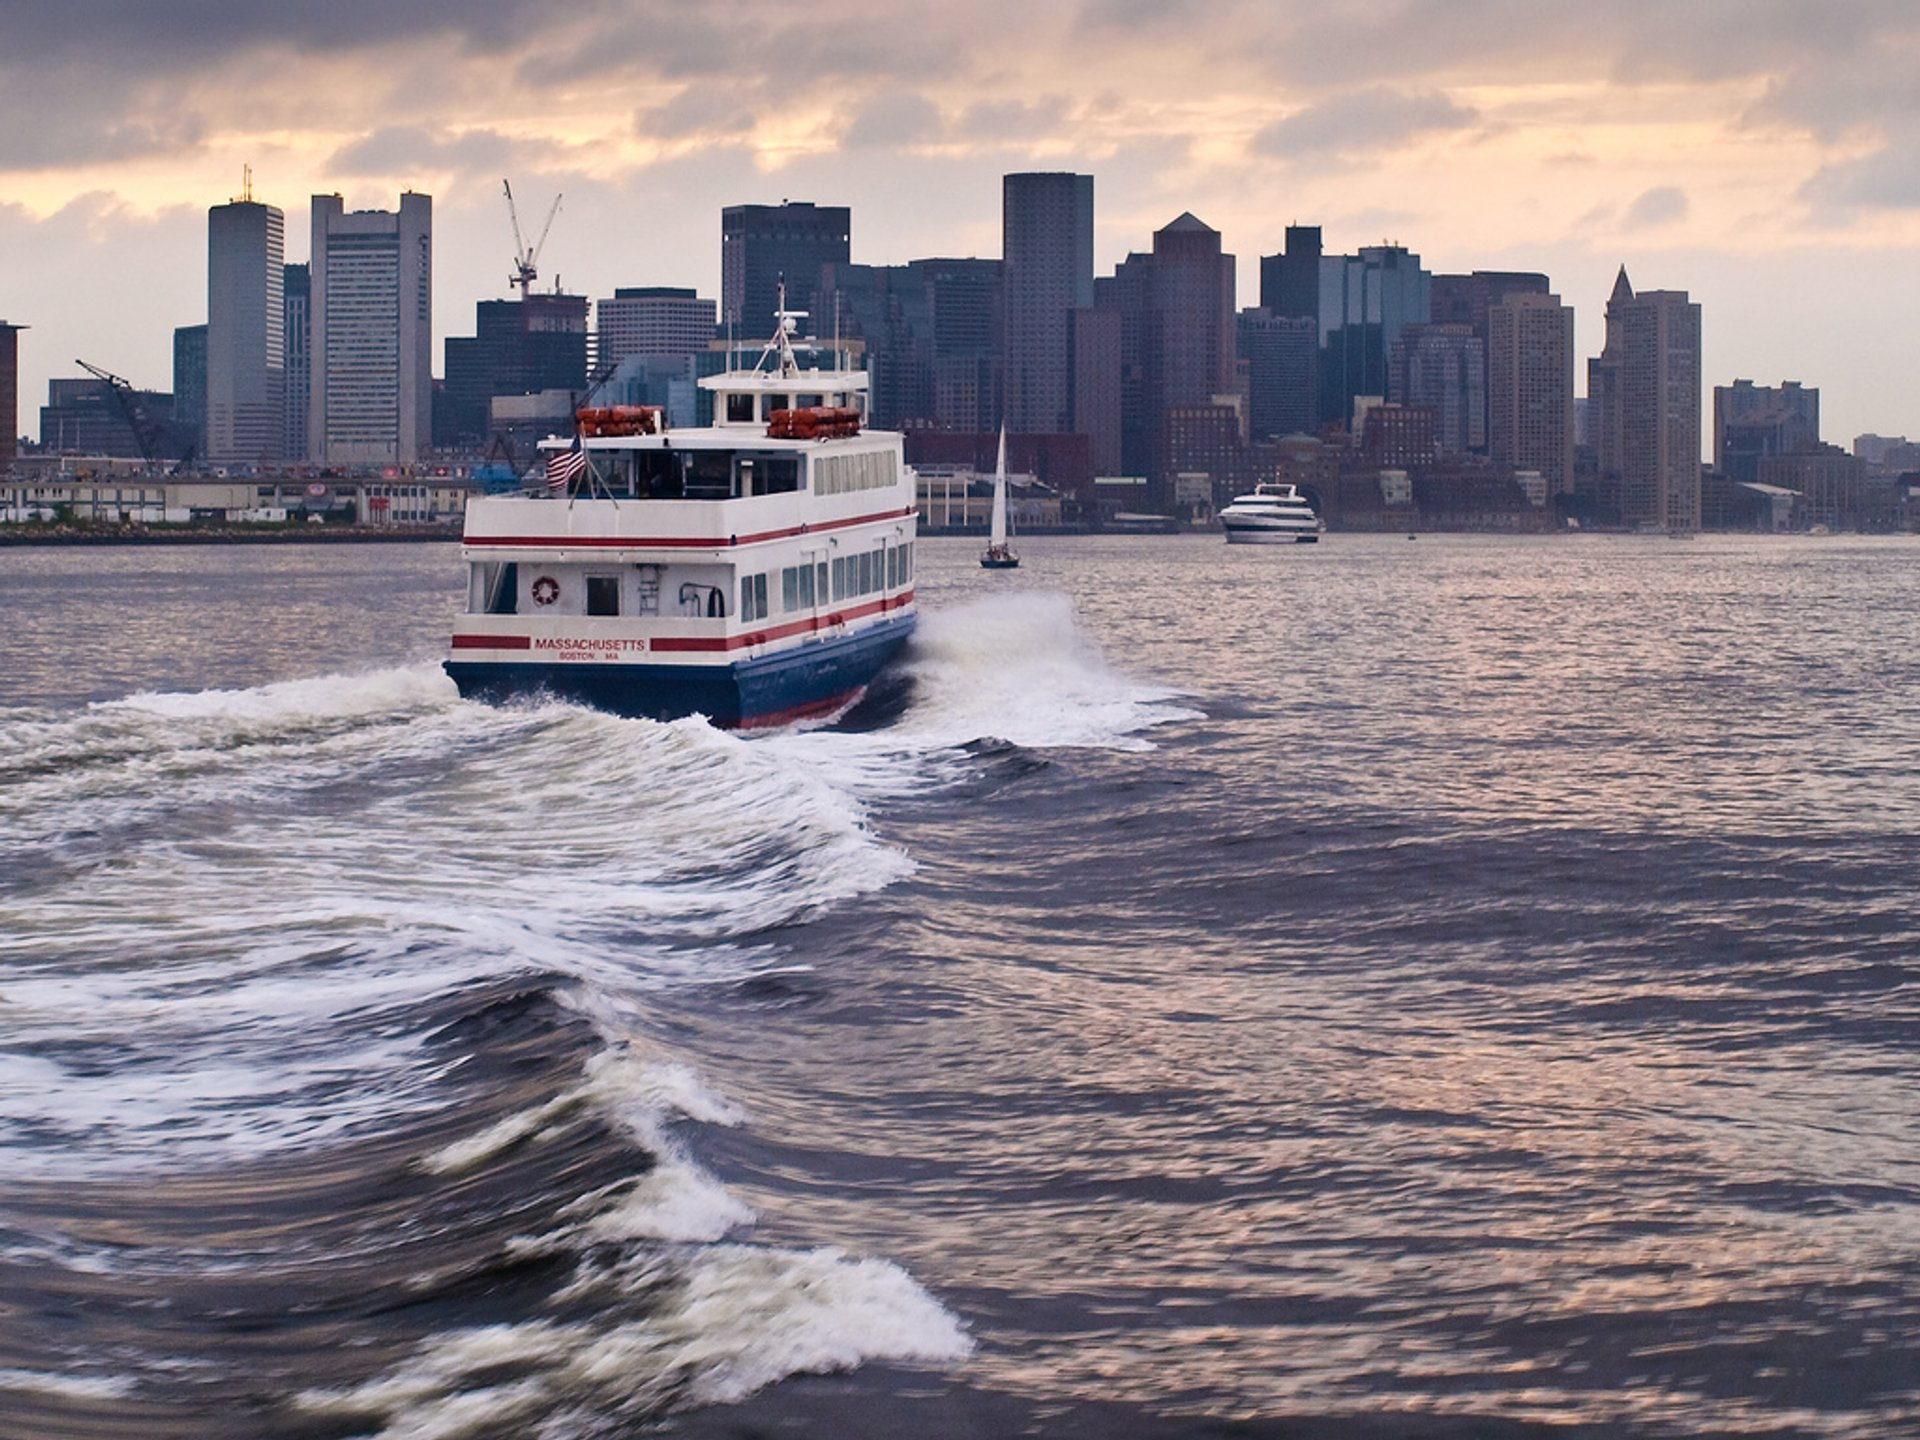 Boston Harbor Cruises in Boston - Best Time